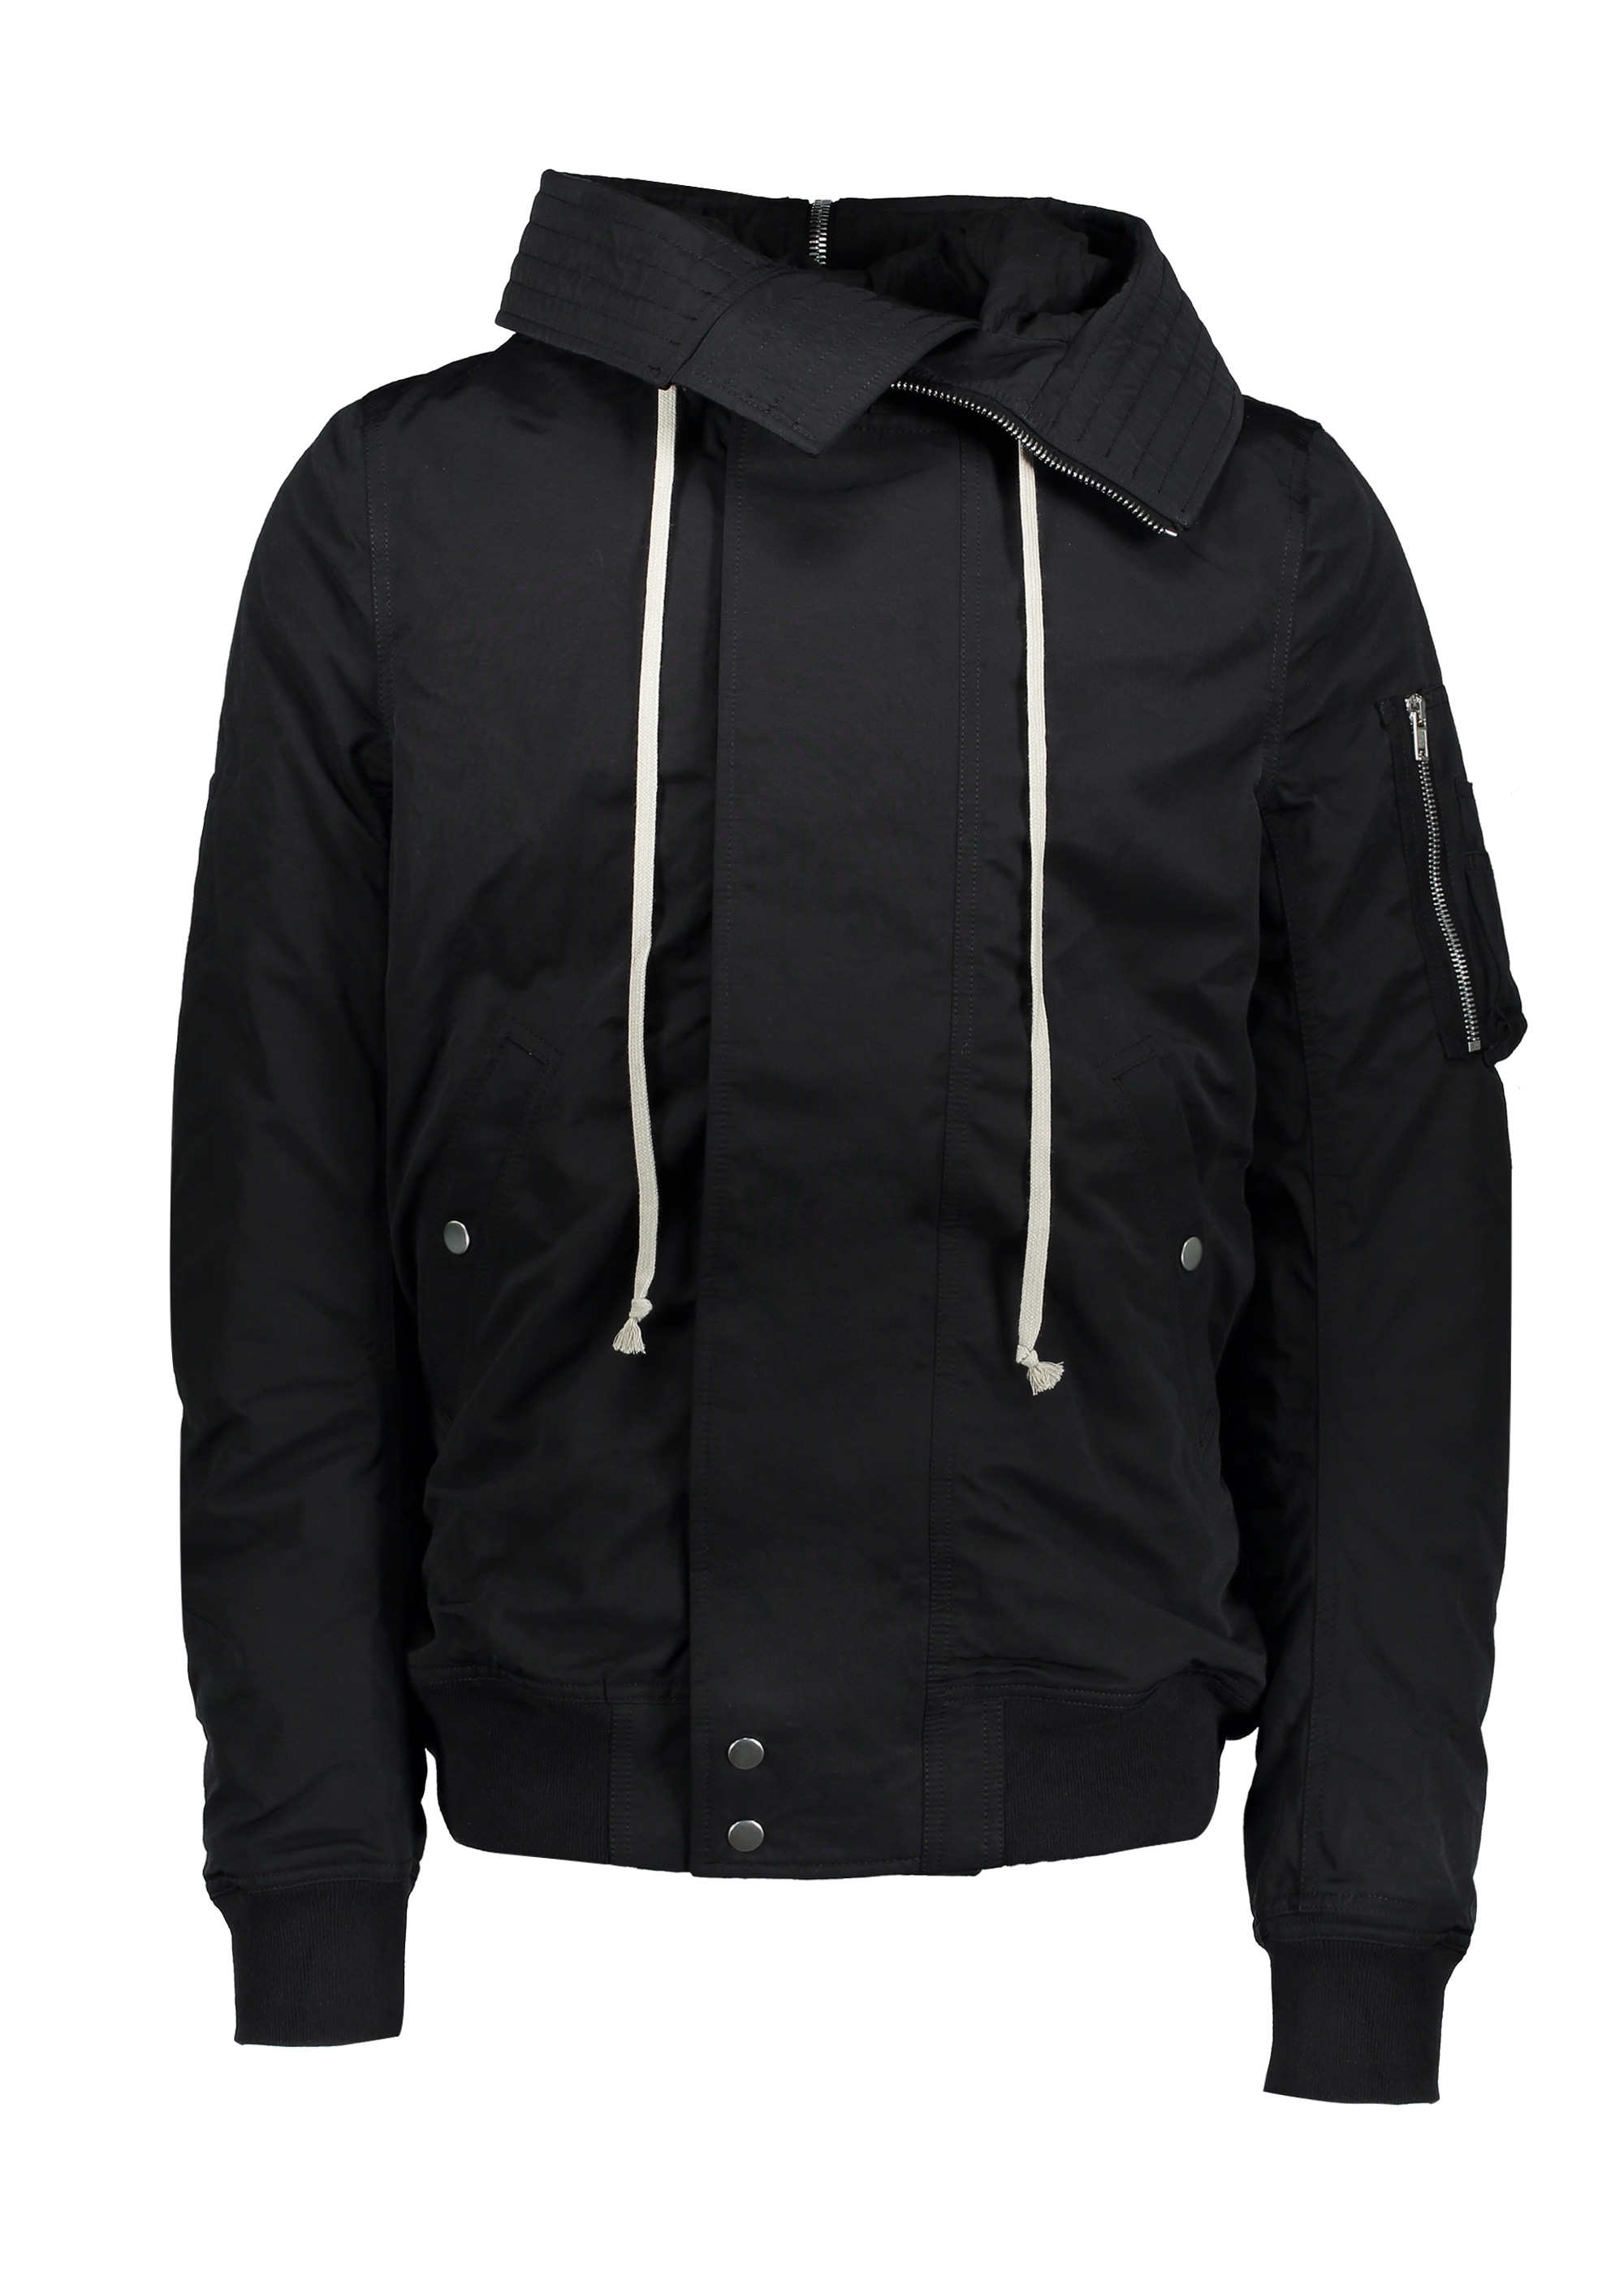 Rick Owens Drkshdw Woven Padded Bomber - Black - Triads Mens from ... 51bb1af844aaf